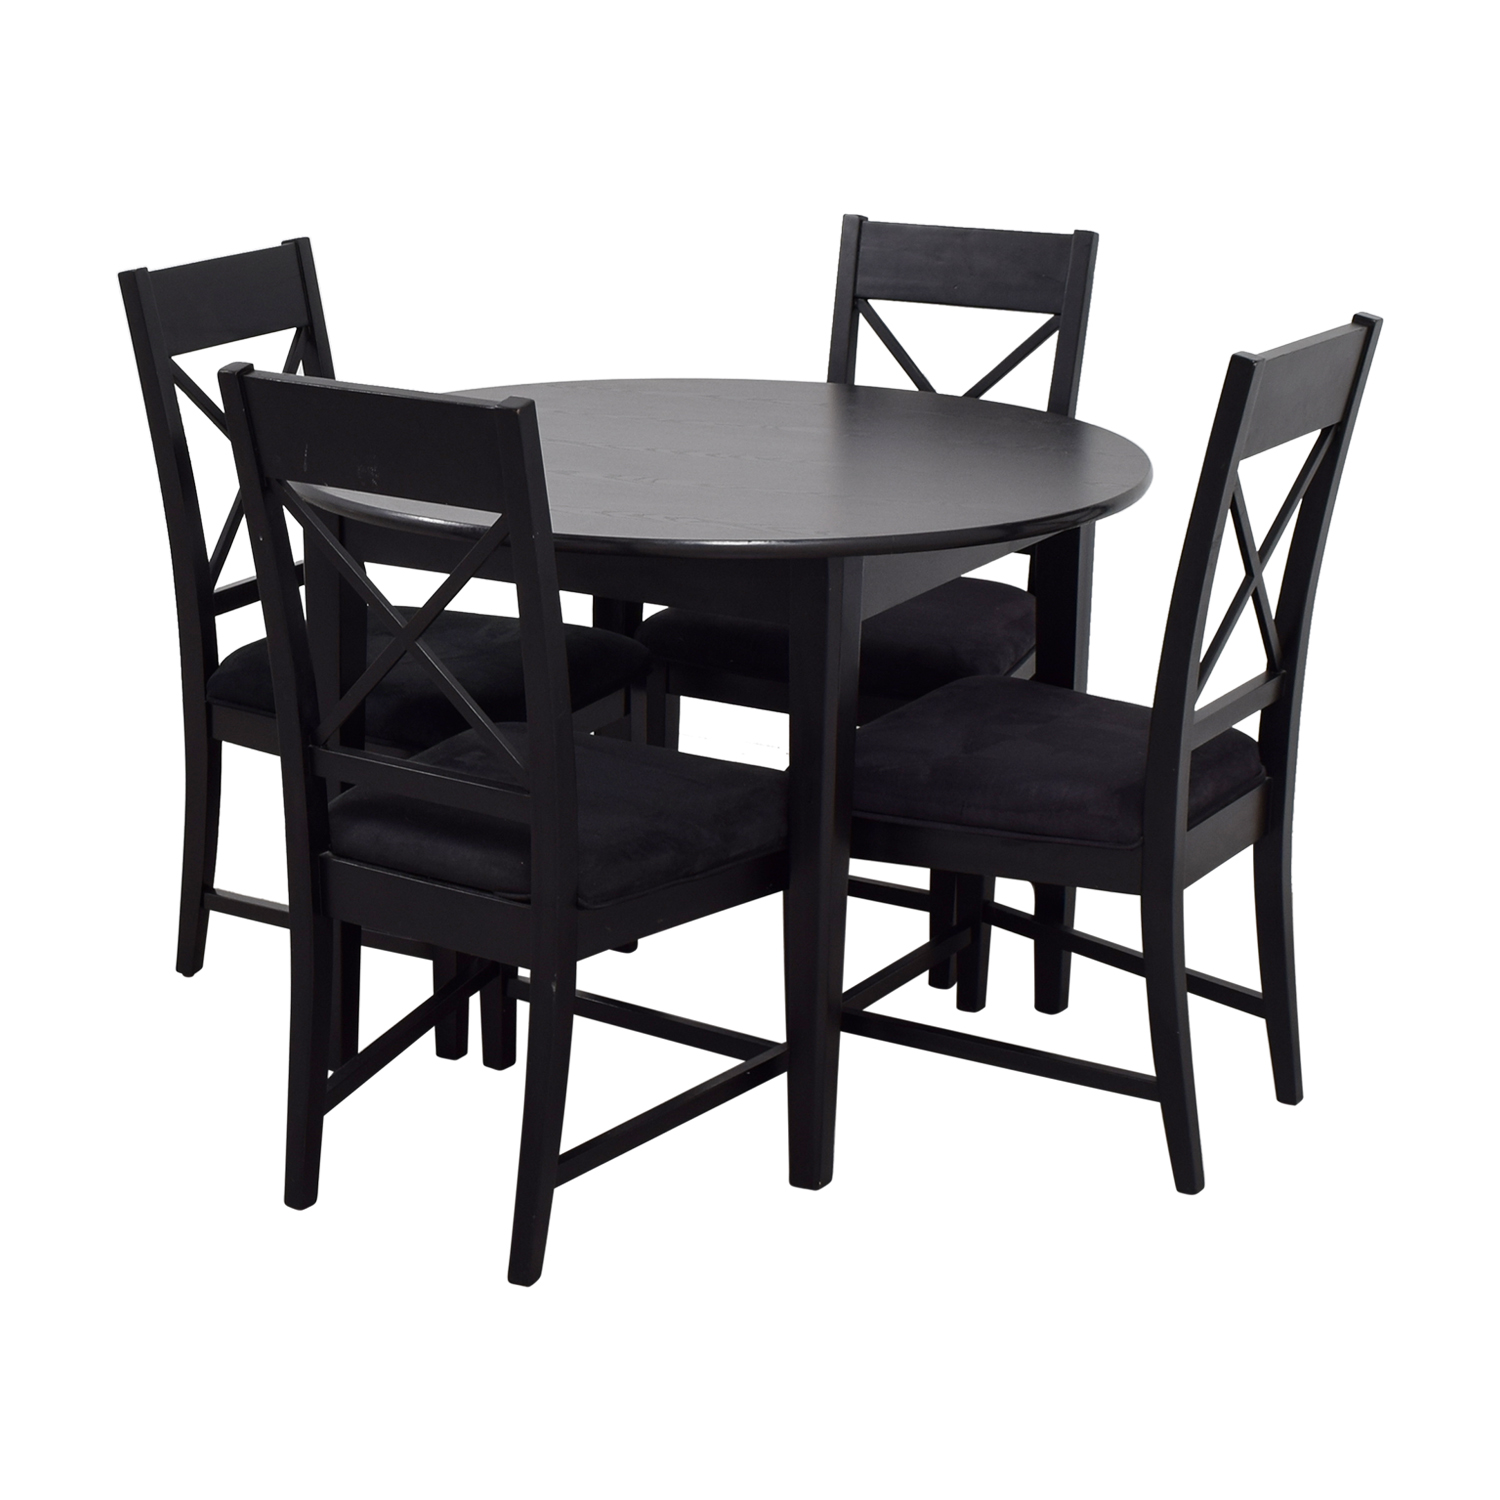 Dark Wood Dining Set: Round Black Wood Dining Set / Tables